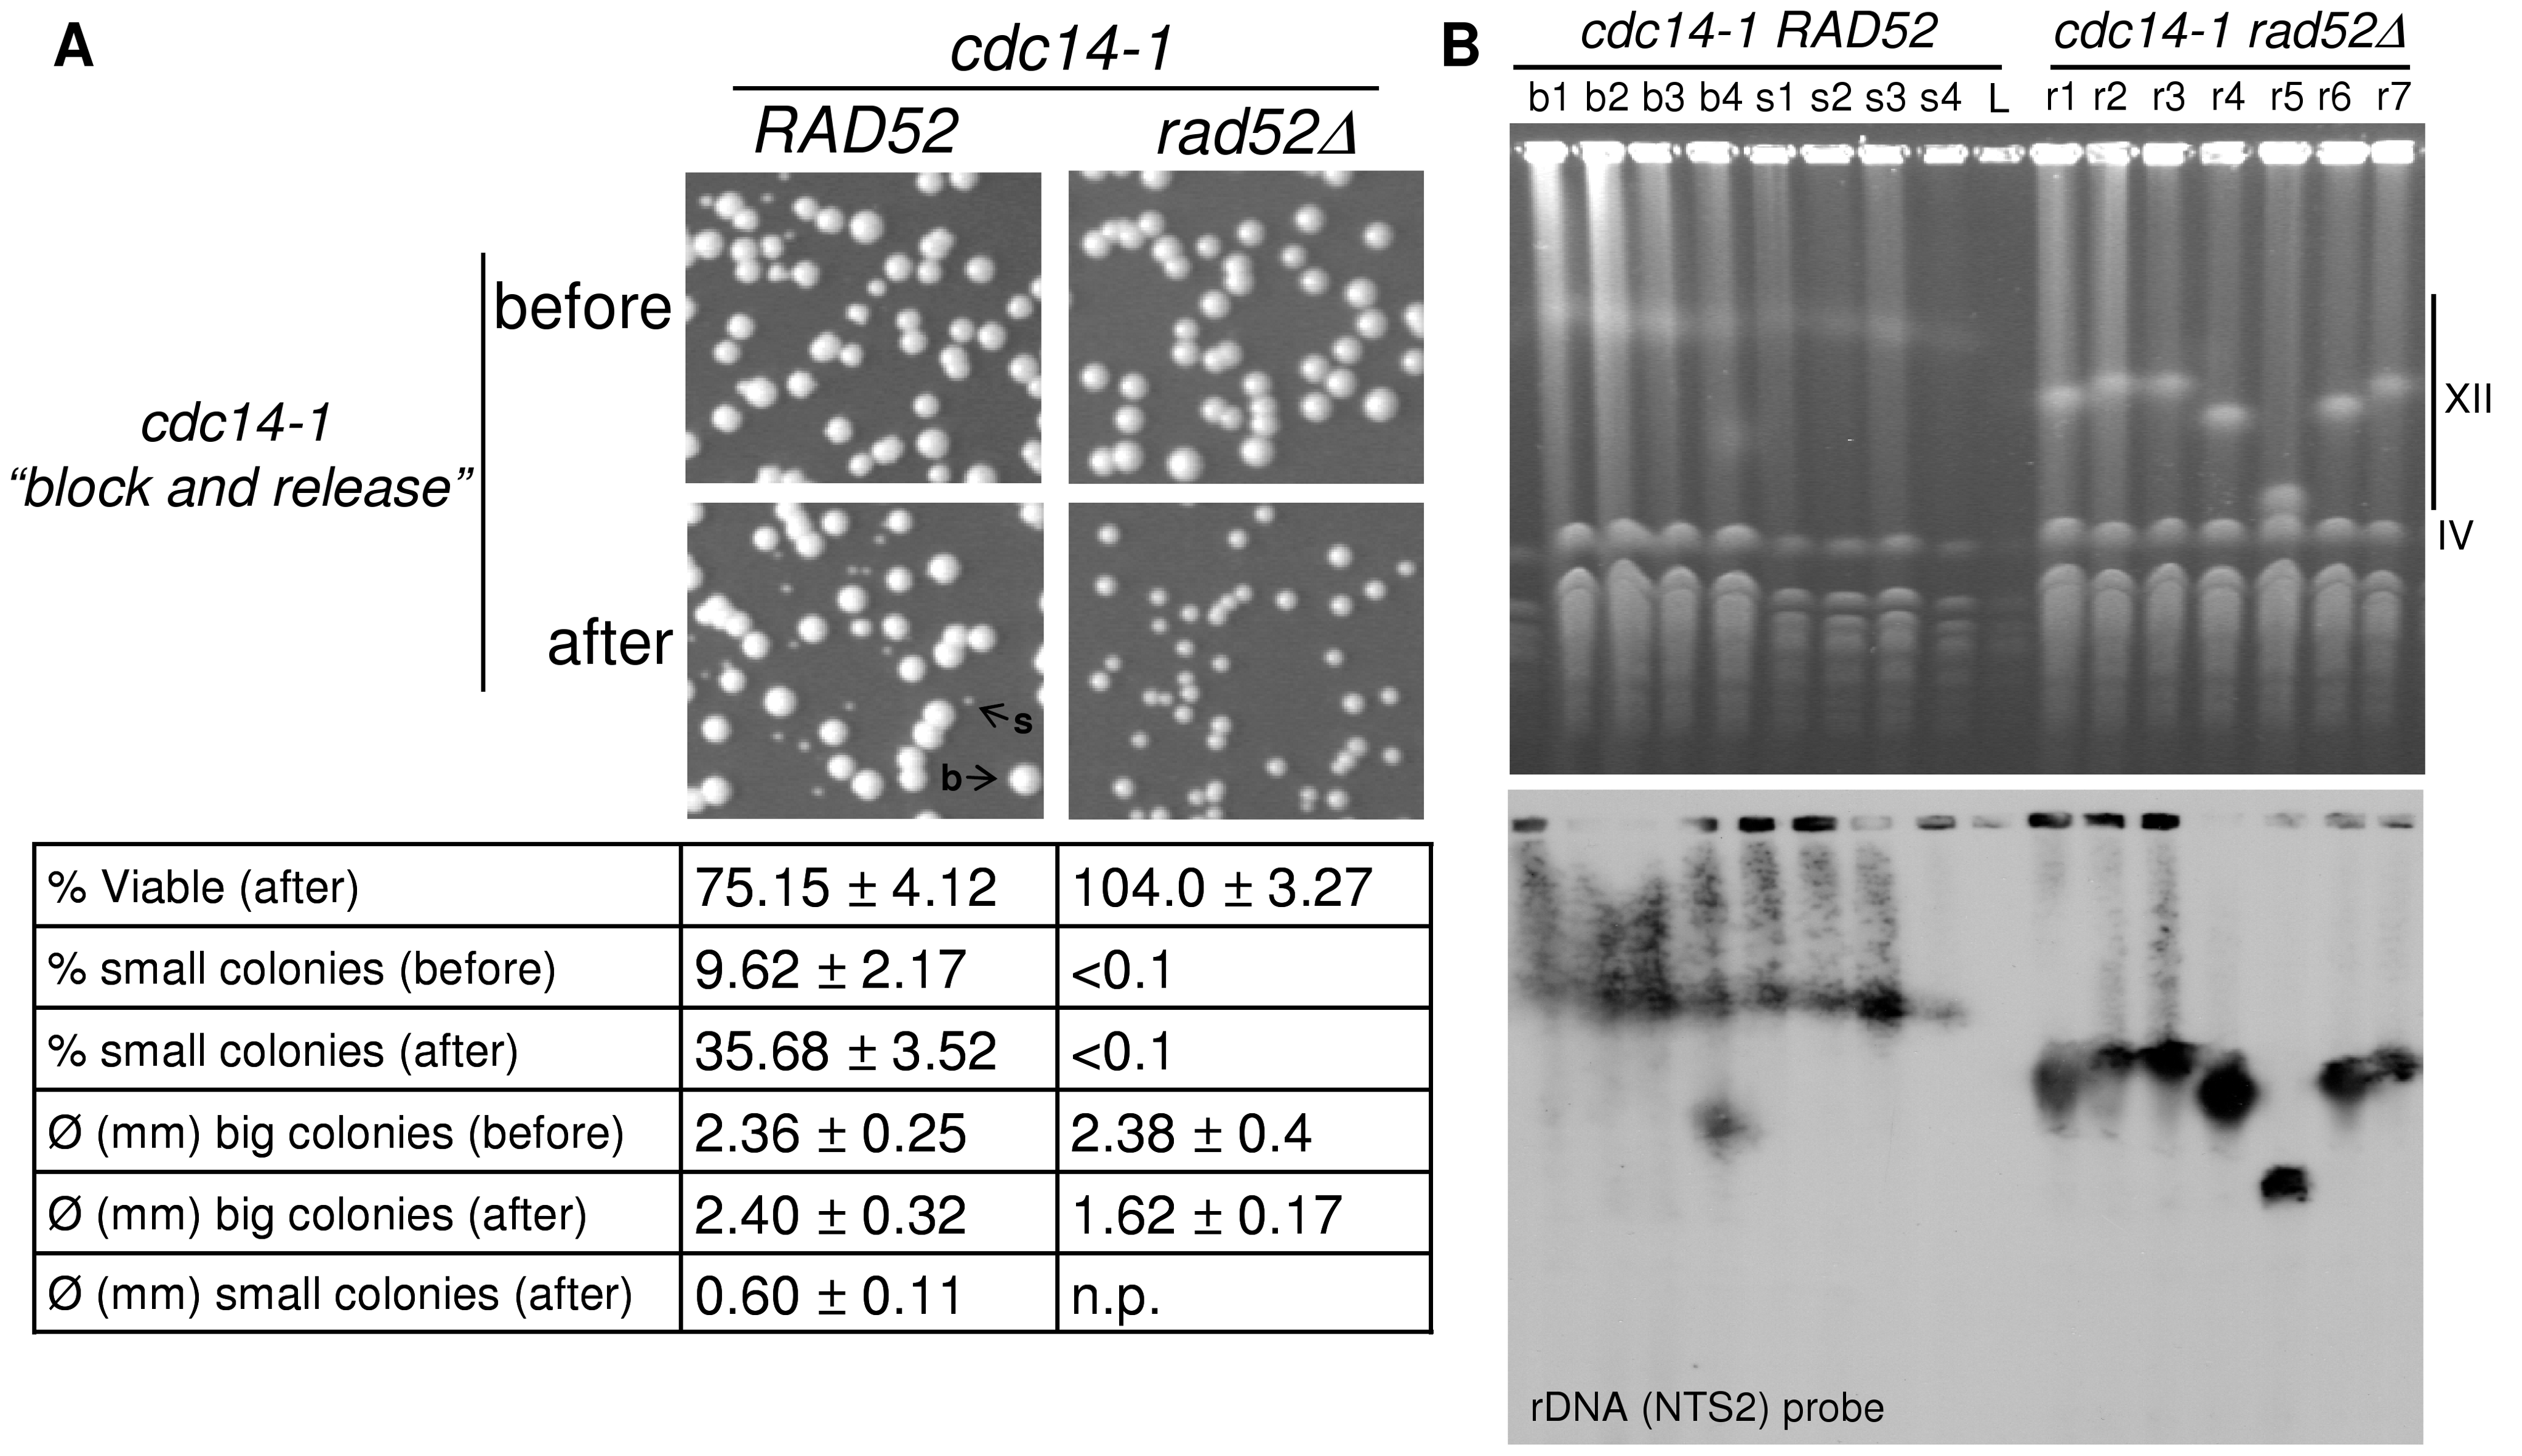 One of the two daughter cells often survives the chromosome XII missegregation event, even in the absence of Rad52.